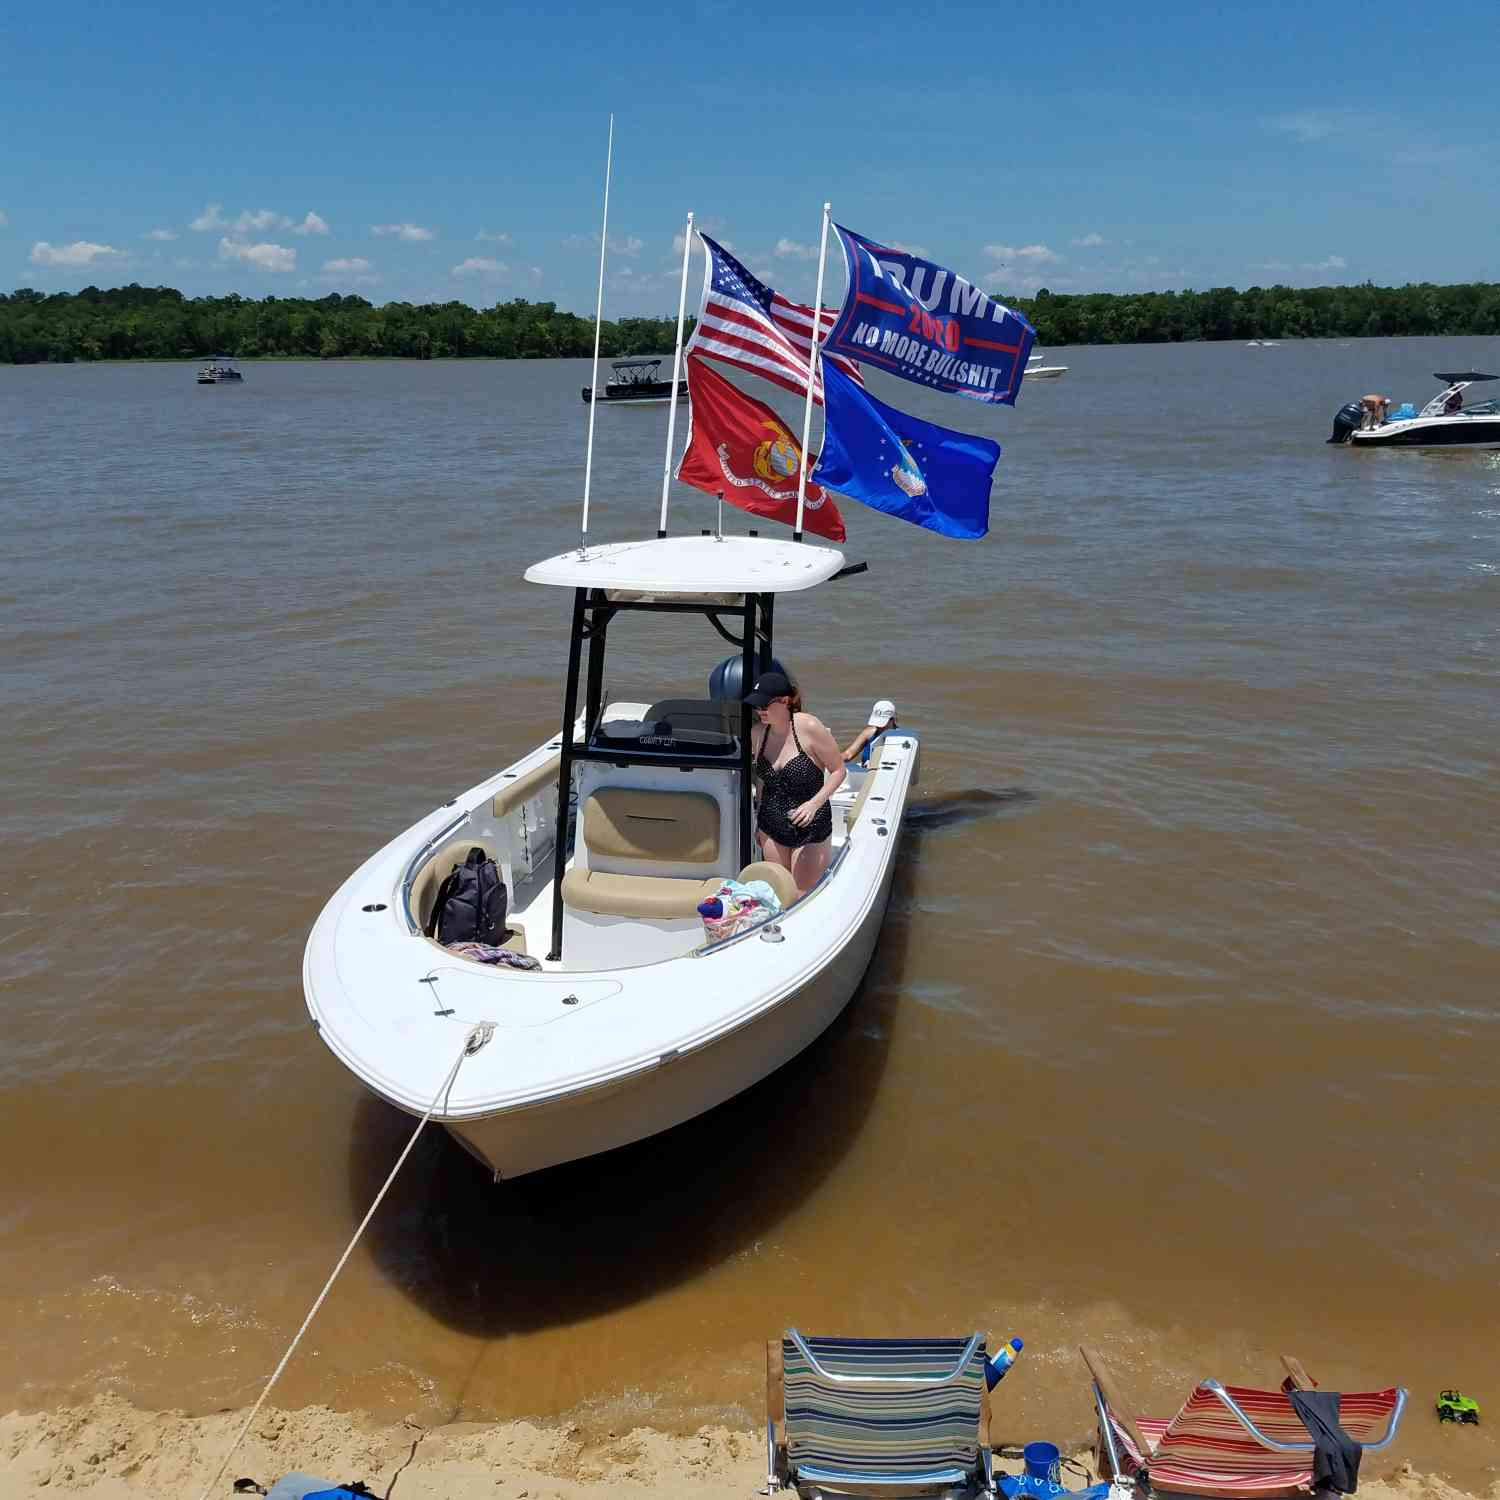 Title: Proud American - On board their Sportsman Open 232 Center Console - Location: Mobile Al. Participating in the Photo Contest #SportsmanJune2019